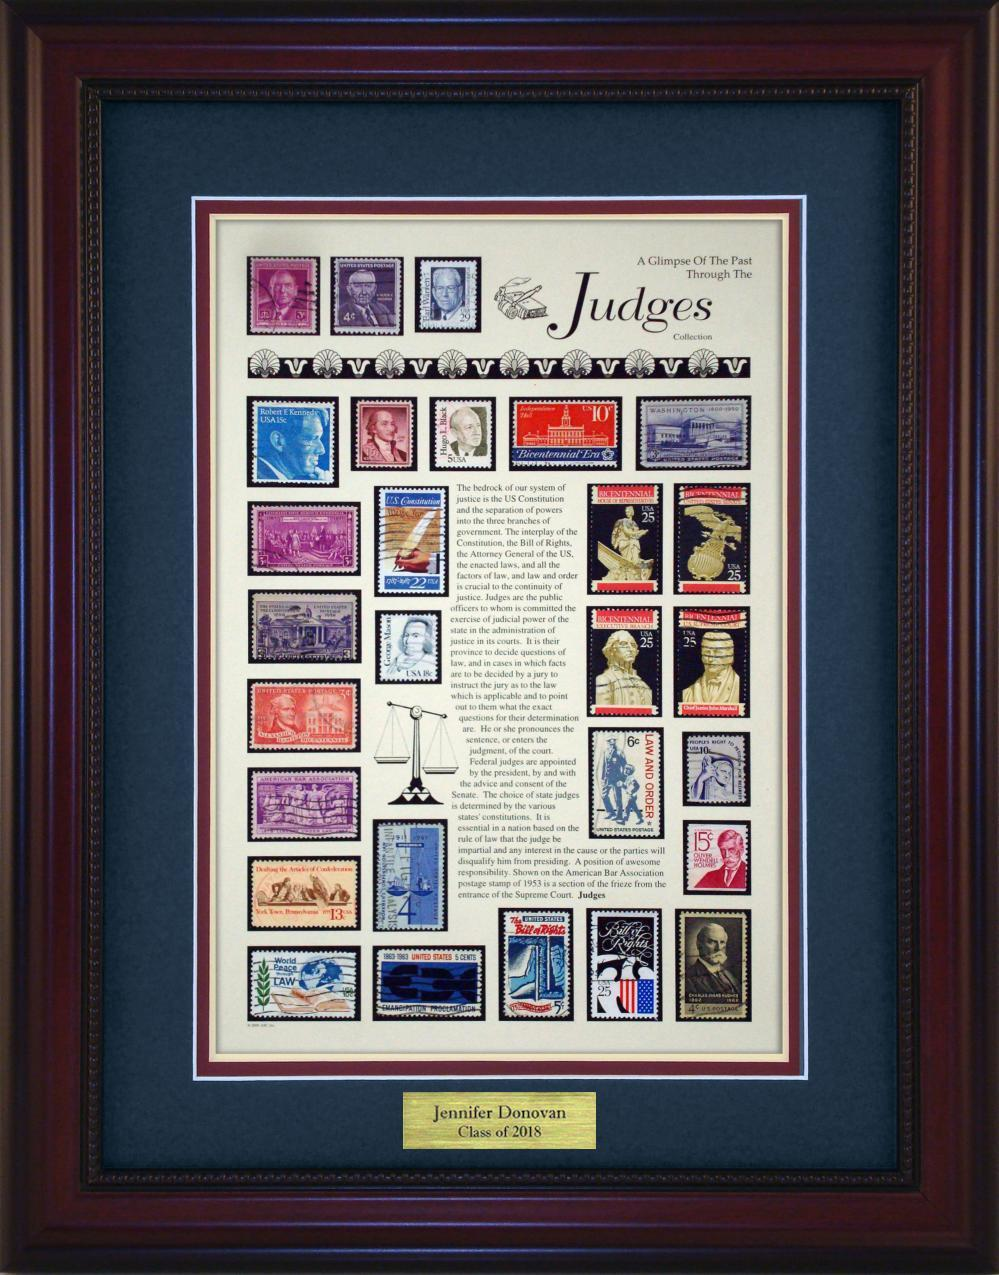 Judges - Personalized Unique Framed Gift